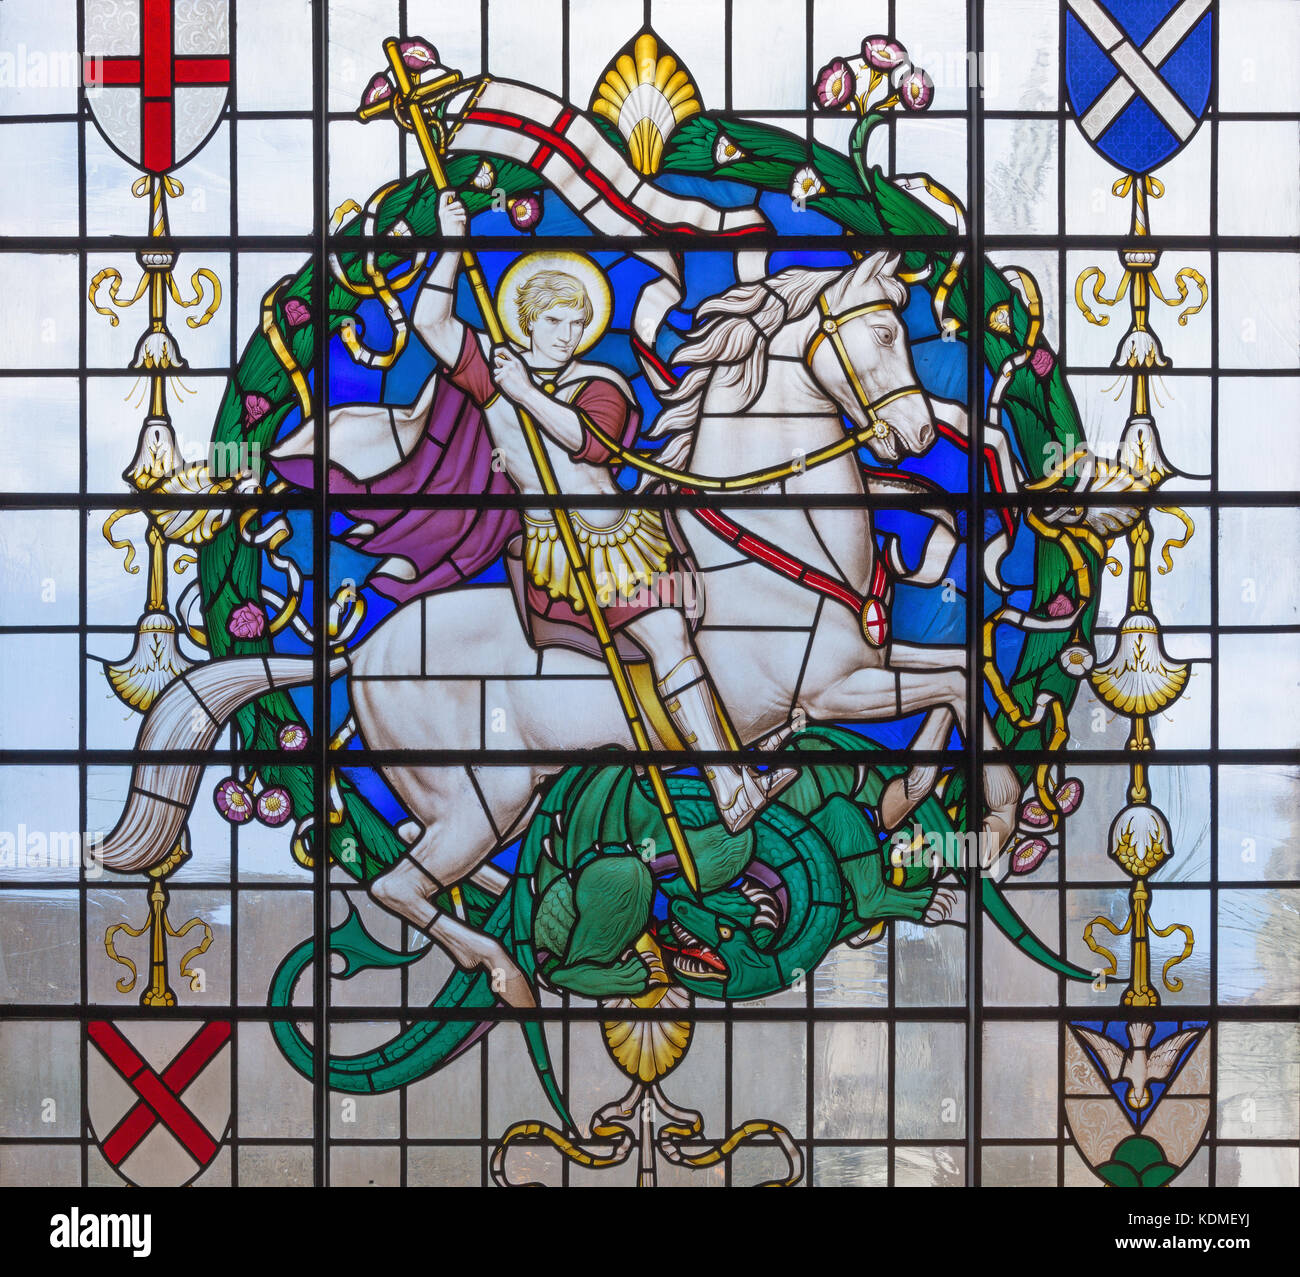 LONDON, GREAT BRITAIN - SEPTEMBER 14, 2017: The saint George on the stained glass in church St. Lawrence Jewry by - Stock Image